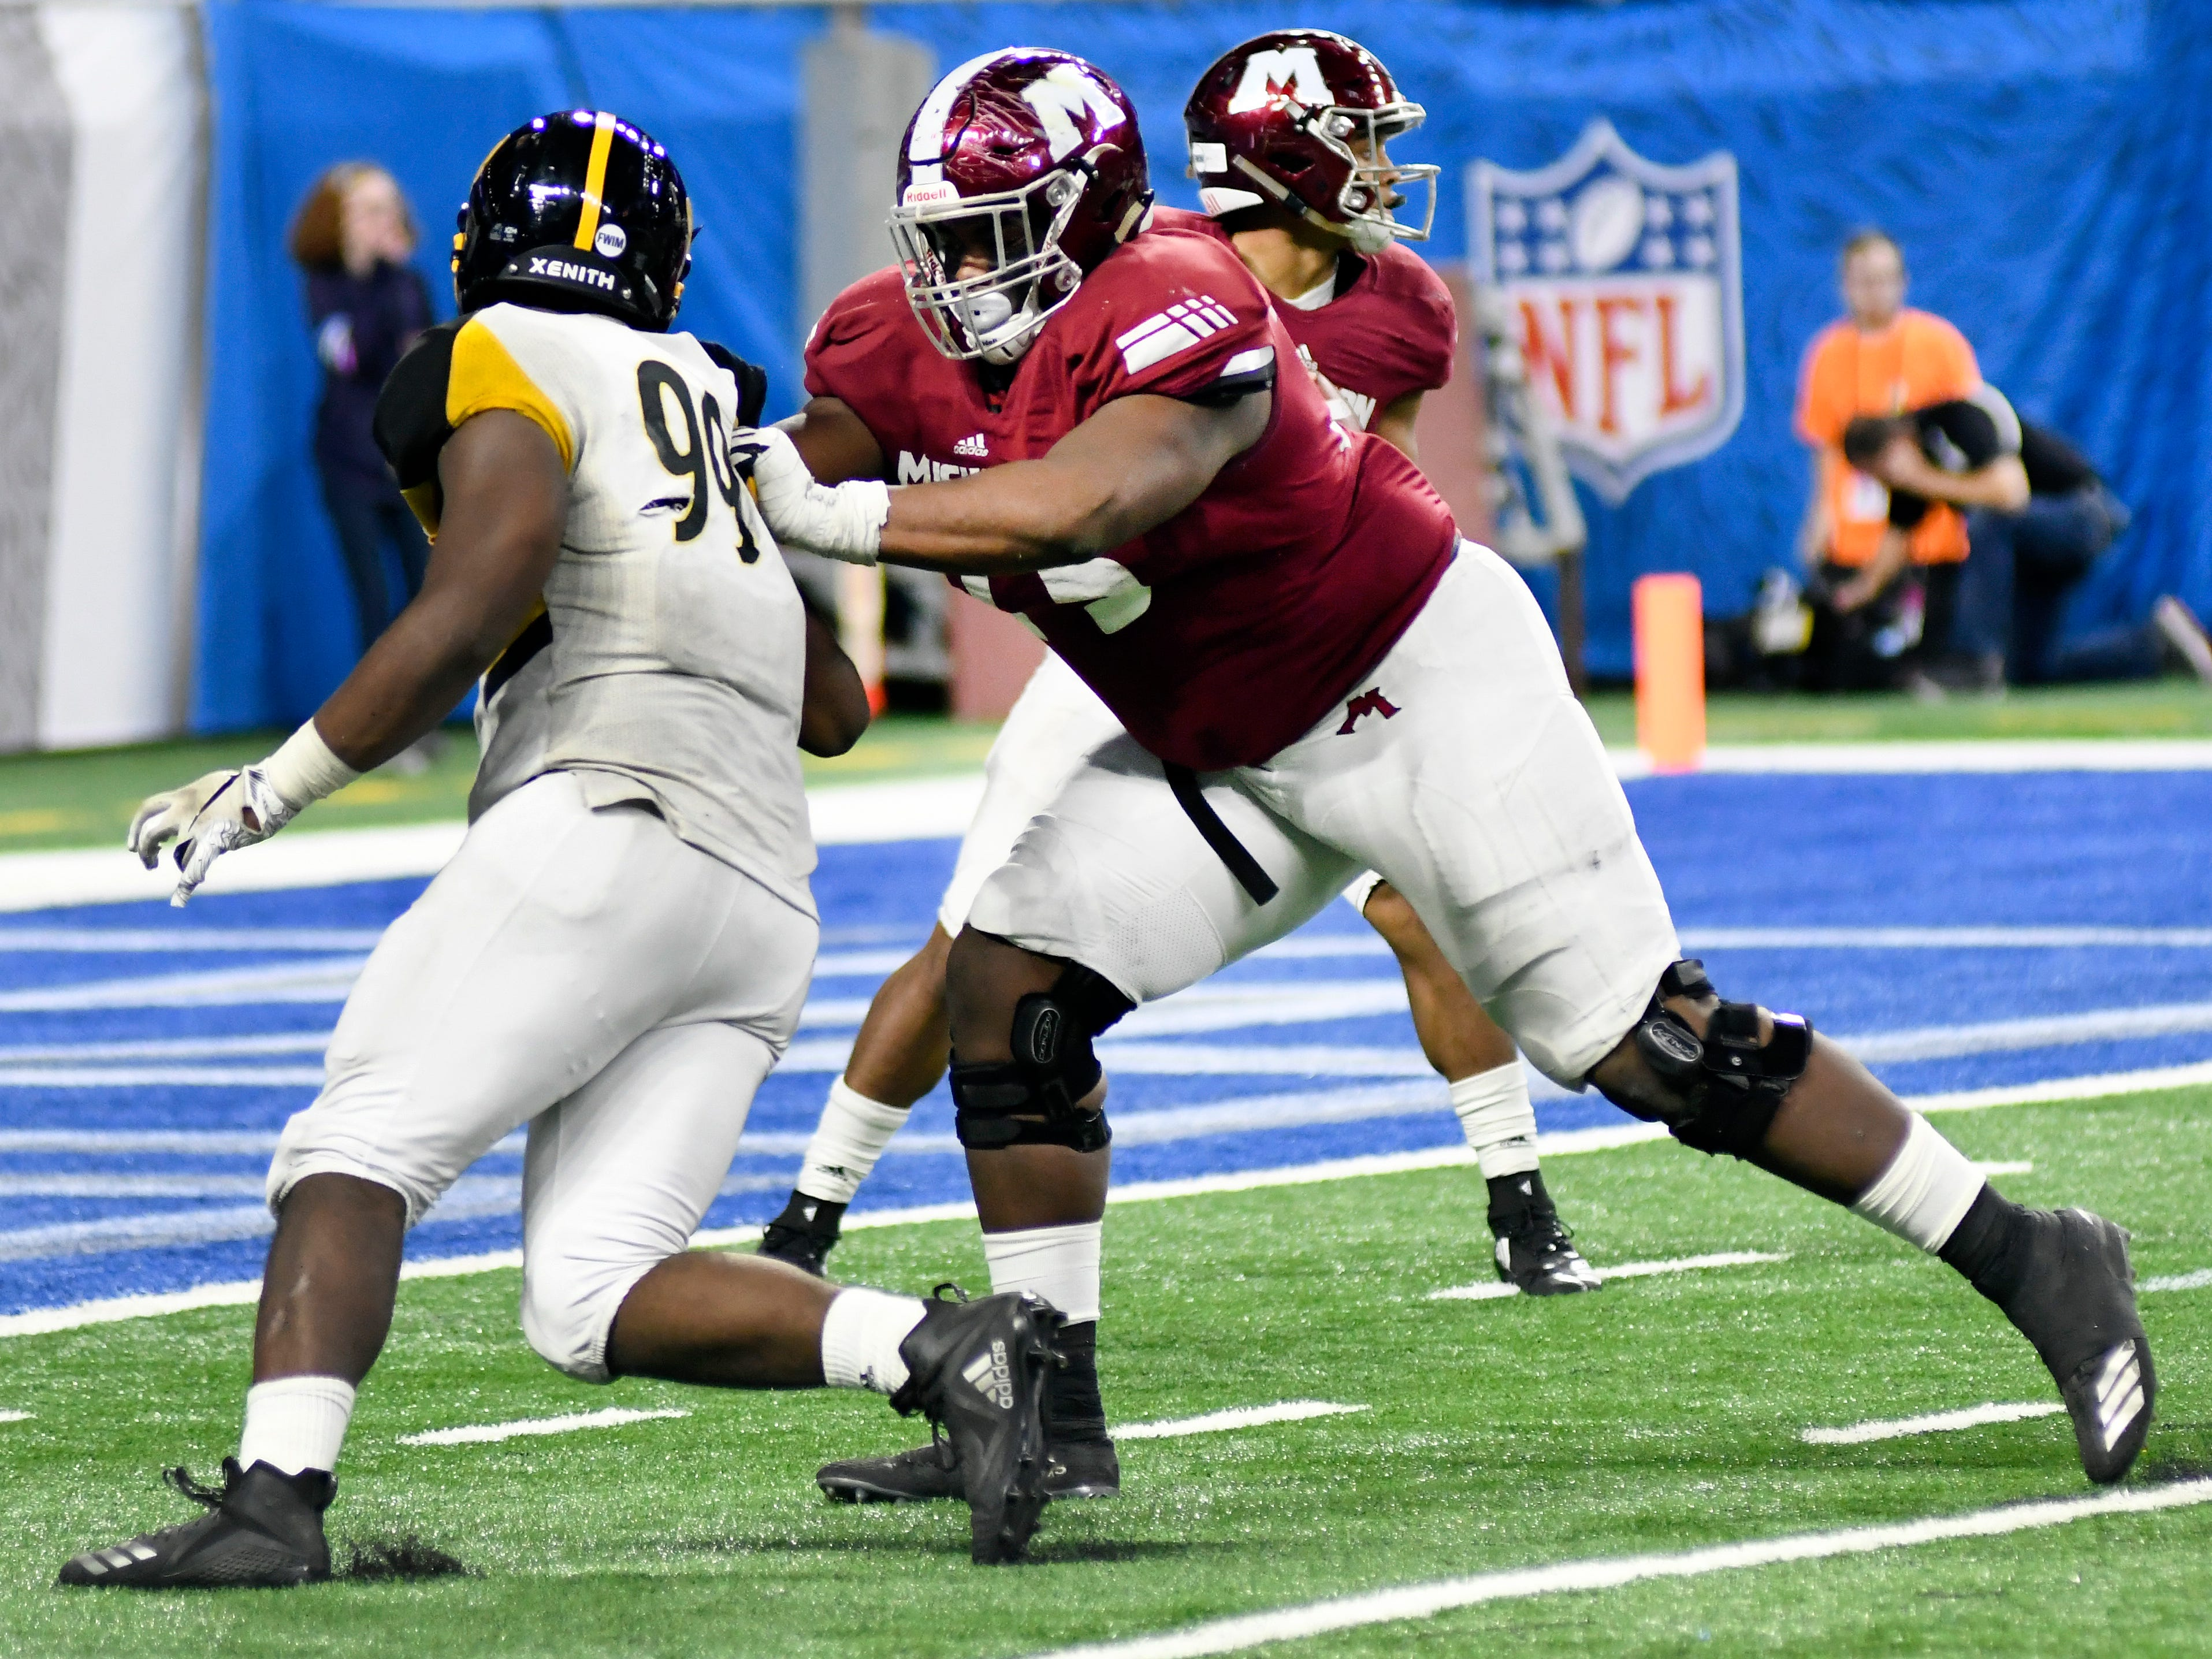 """4. Anthony Bradford, Muskegon (LSU) — T/6-5/355: Bradford was a dominant run blocker for Muskegon during its run to three consecutive Division 3 state championship game appearances, winning the title in 2017, and a 27-game winning streak before a loss to Detroit King in this year's championship game. """"He's a young man who has for three years given every ounce of his effort and his heart to our program,"""" coach Shane Fairfield said. """"It was always a comforting feeling going into a game that no matter what happened we had him to lean on. He was always an amazing run blocker, did things with his feet and his strength and athletic ability like I haven't seen in a big guy, but he really took it upon himself to get better as a pass blocker."""" Bradford earned a spot on The News Dream Team."""